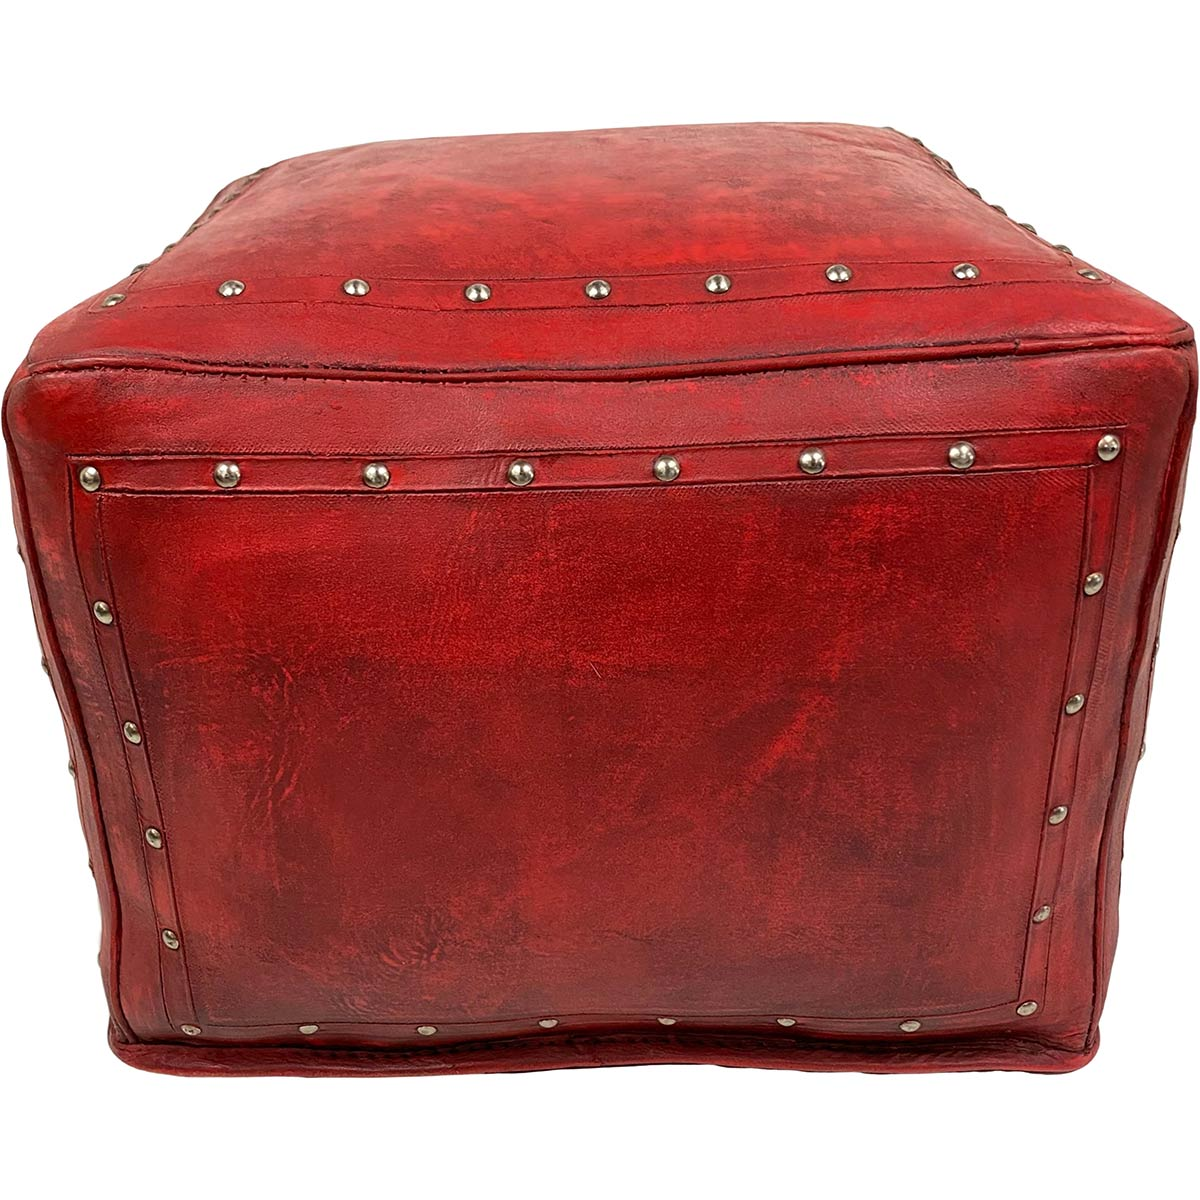 Large Square Ottoman with Tacks - Red